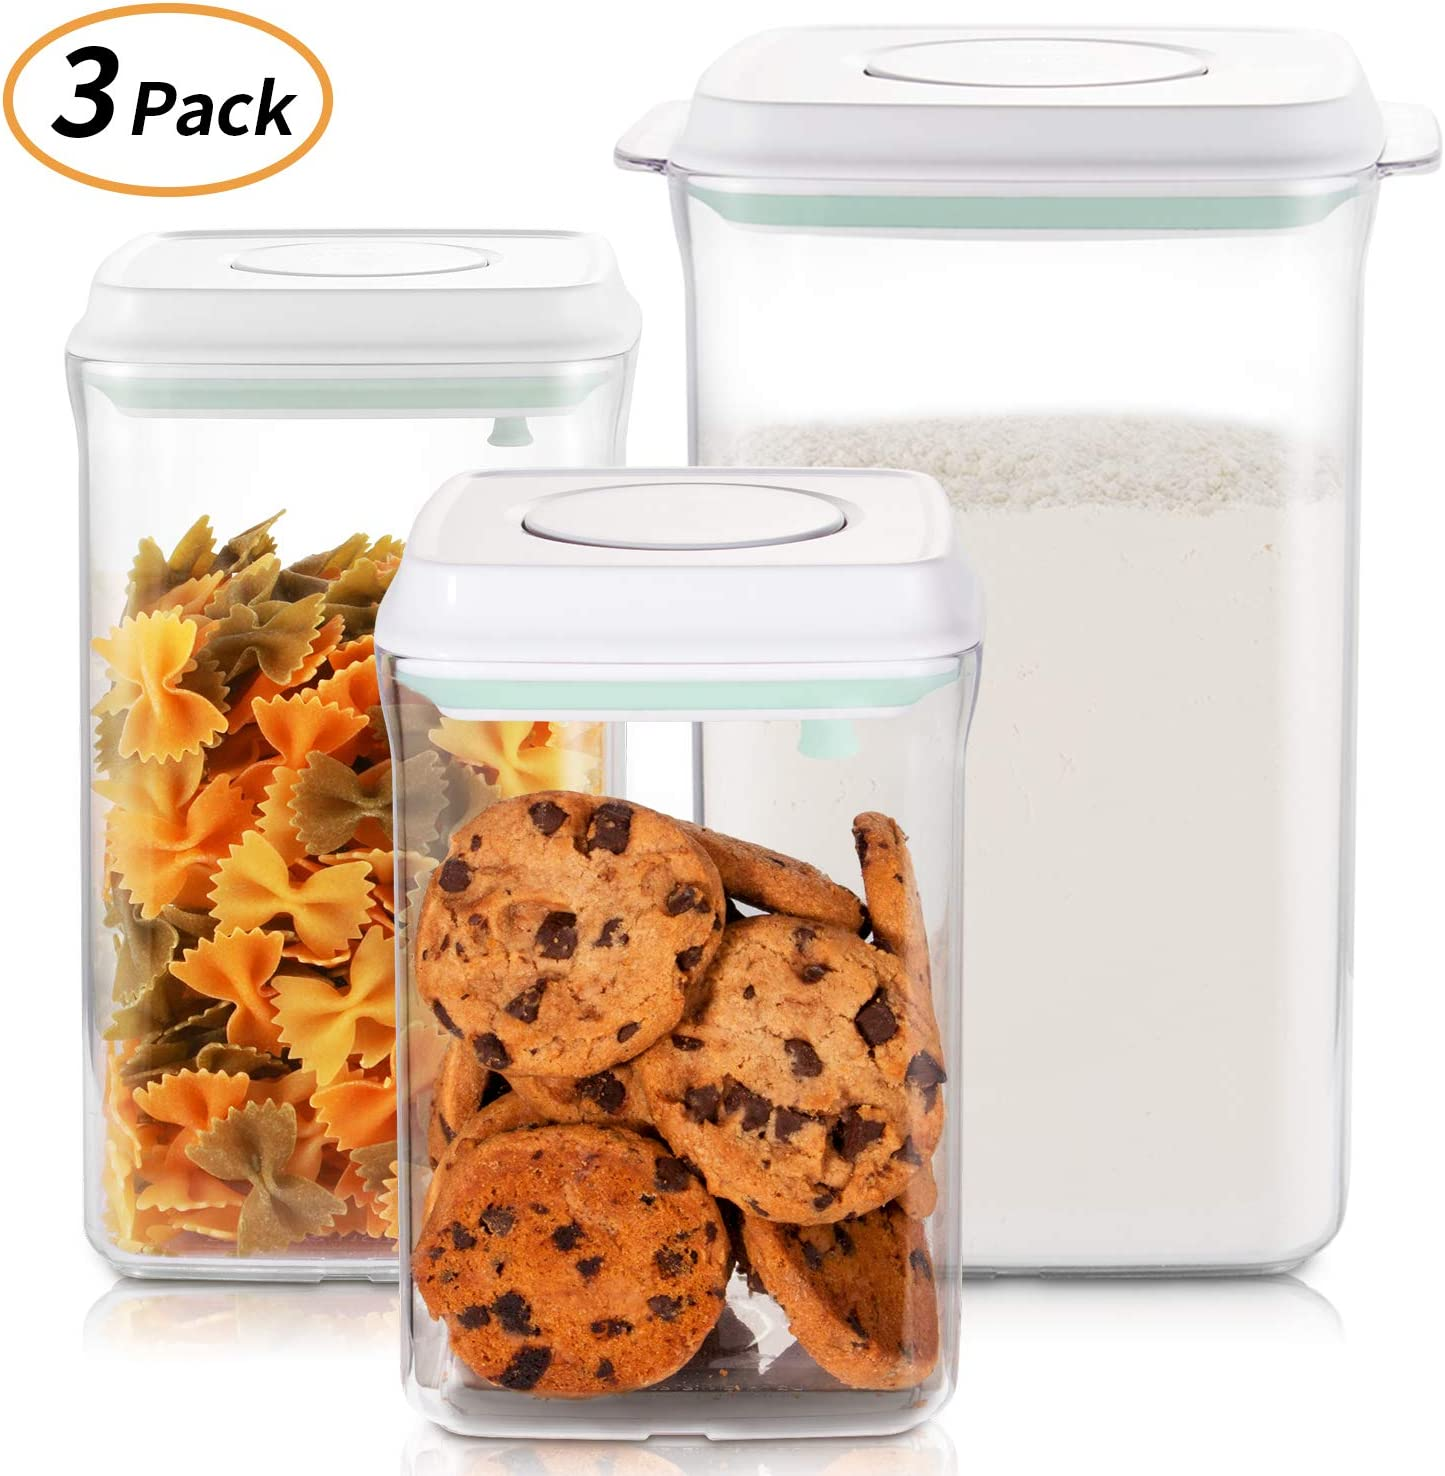 Food Storage Containers Set, SKY LIGHT Airtight Seal Canisters with POP - UP Lids for Kitchen Pantry Organization and Storage - Clear Plastic Jar BPA Free for Cereal, Snacks, Flour, Sugar